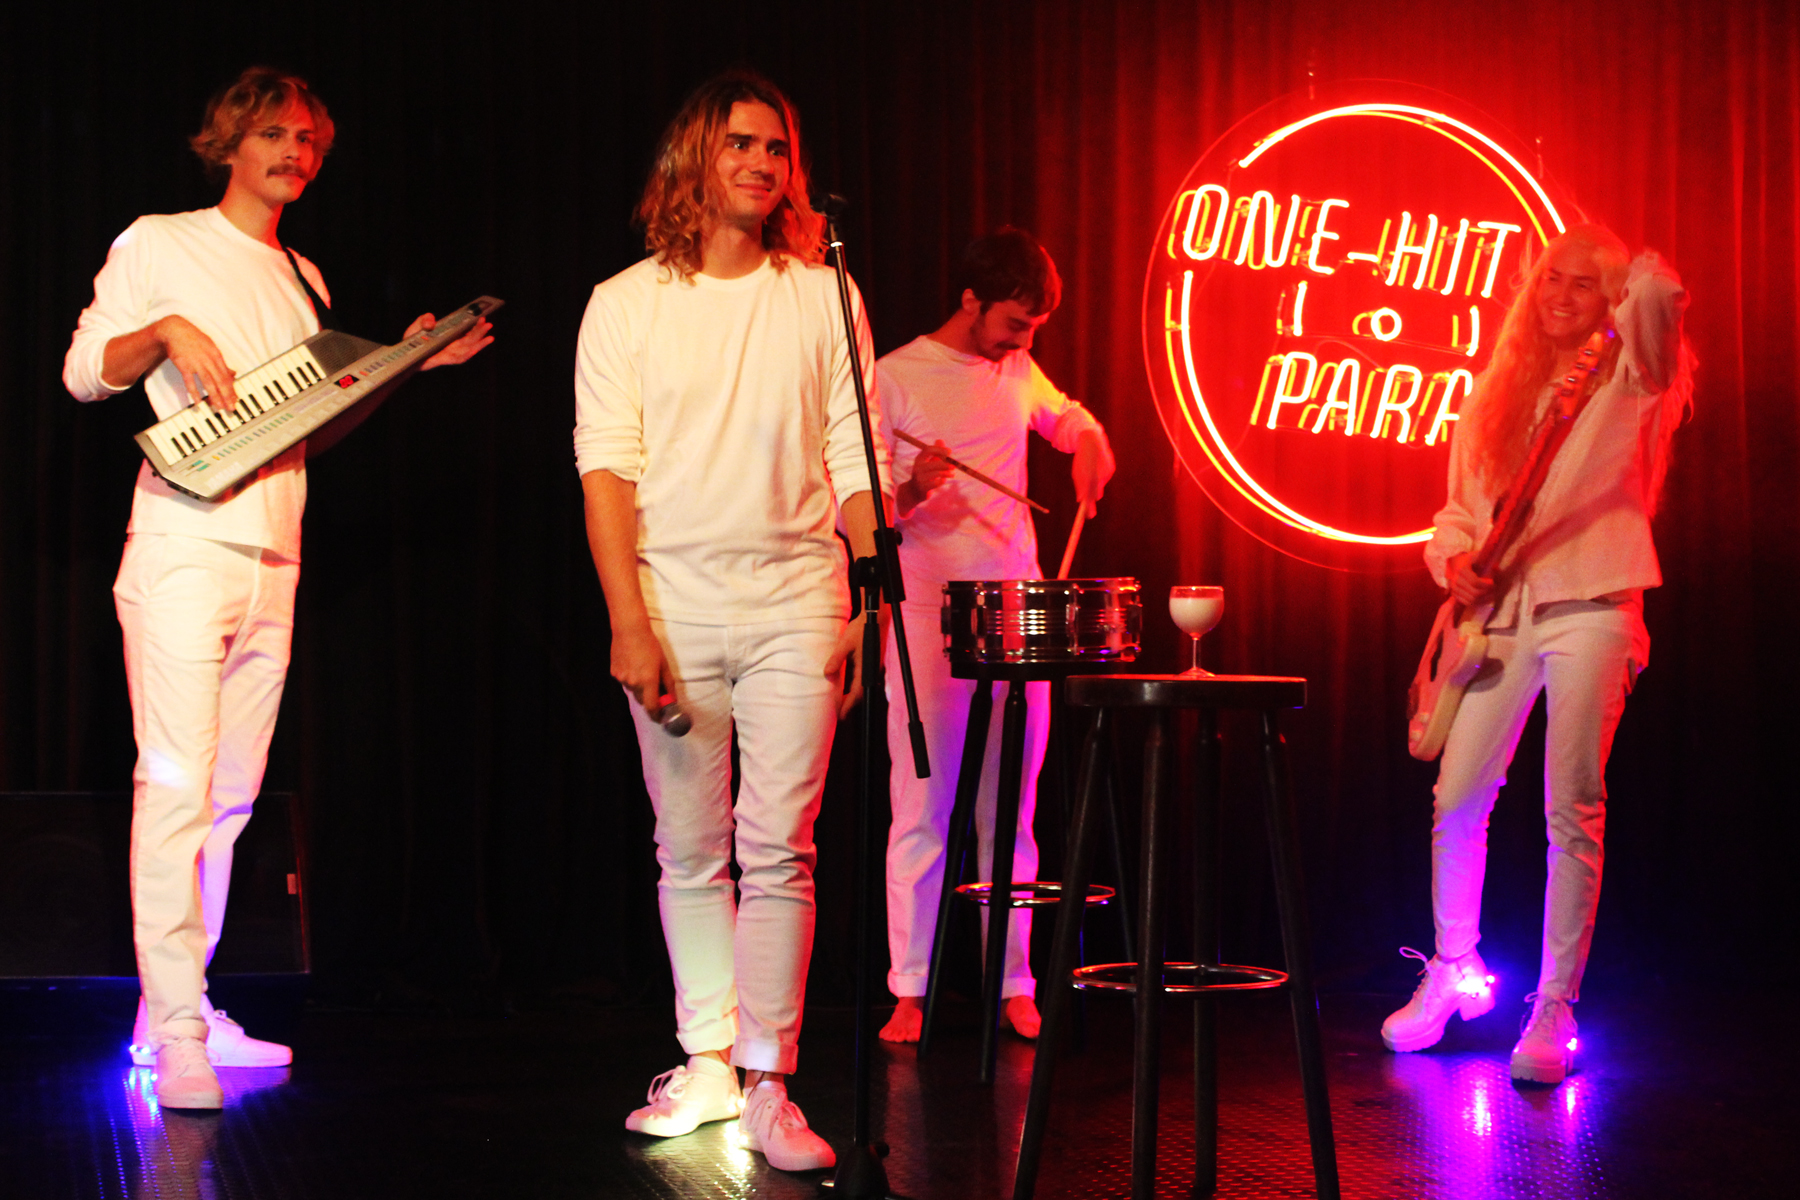 Fenster Band fenster bei the one hit parade the one hit parade